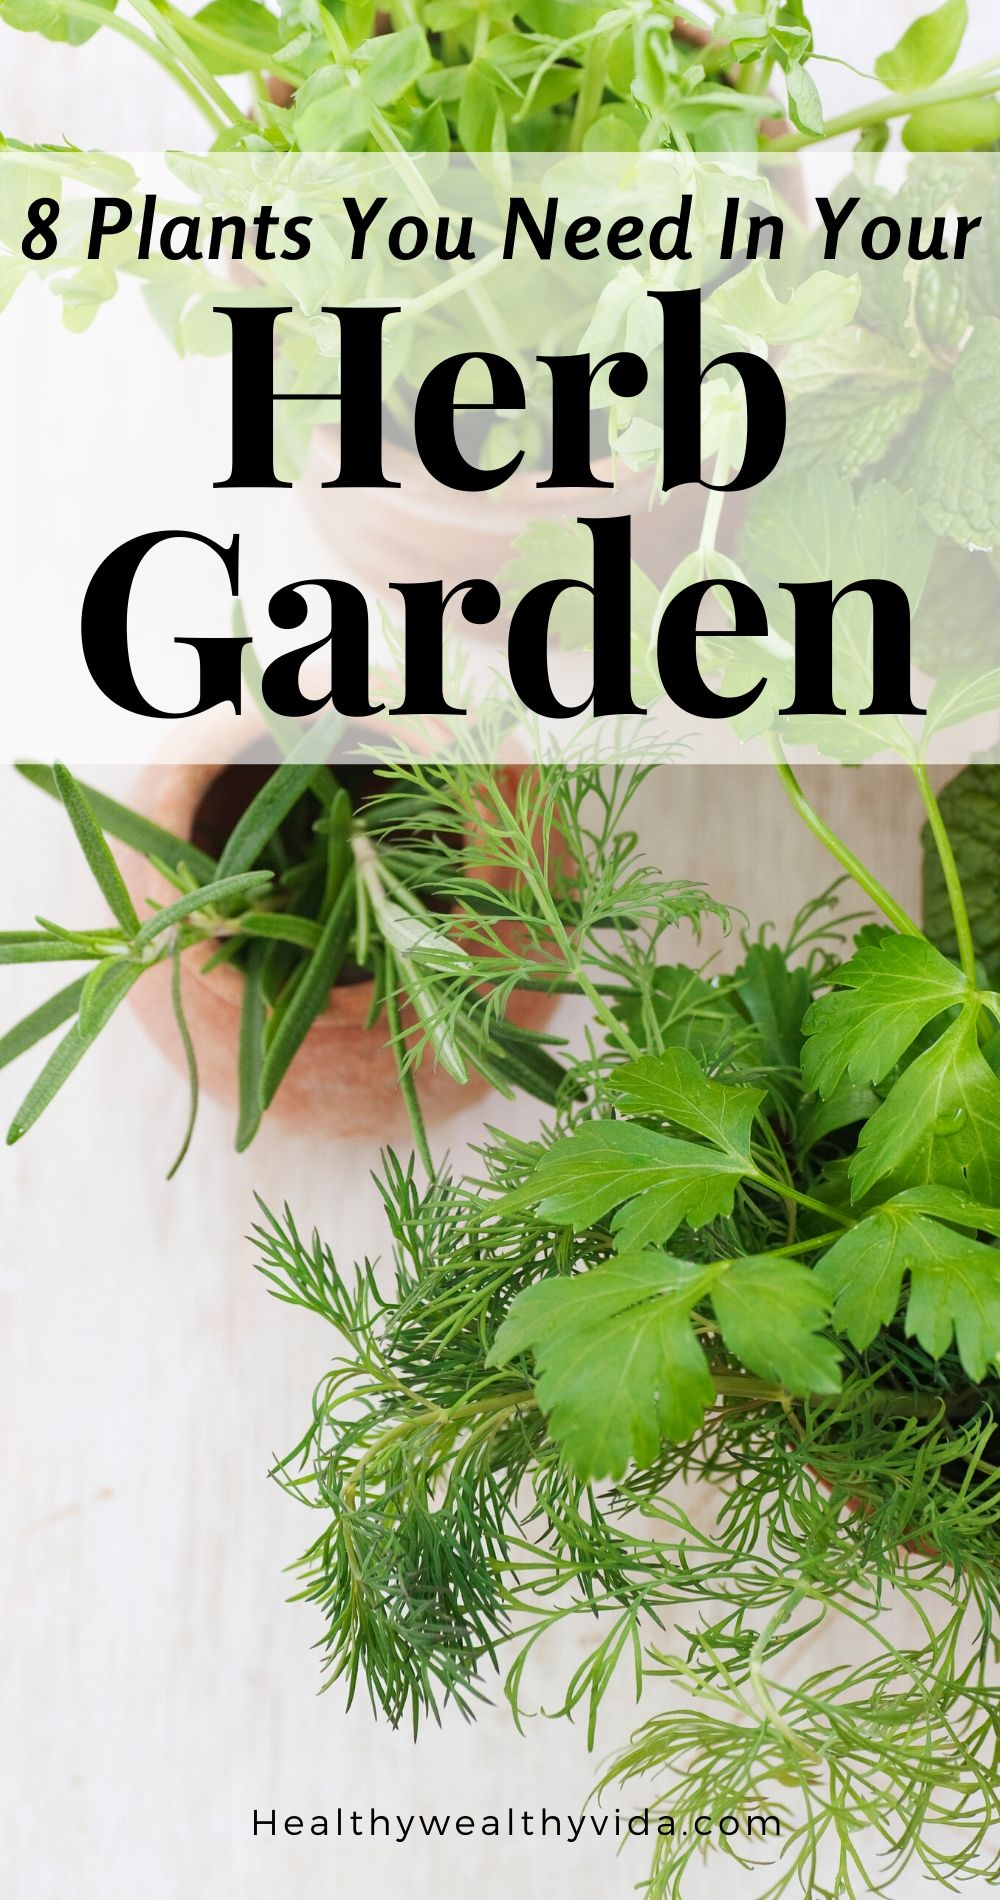 8 Plants You Need In Your Herb Garden